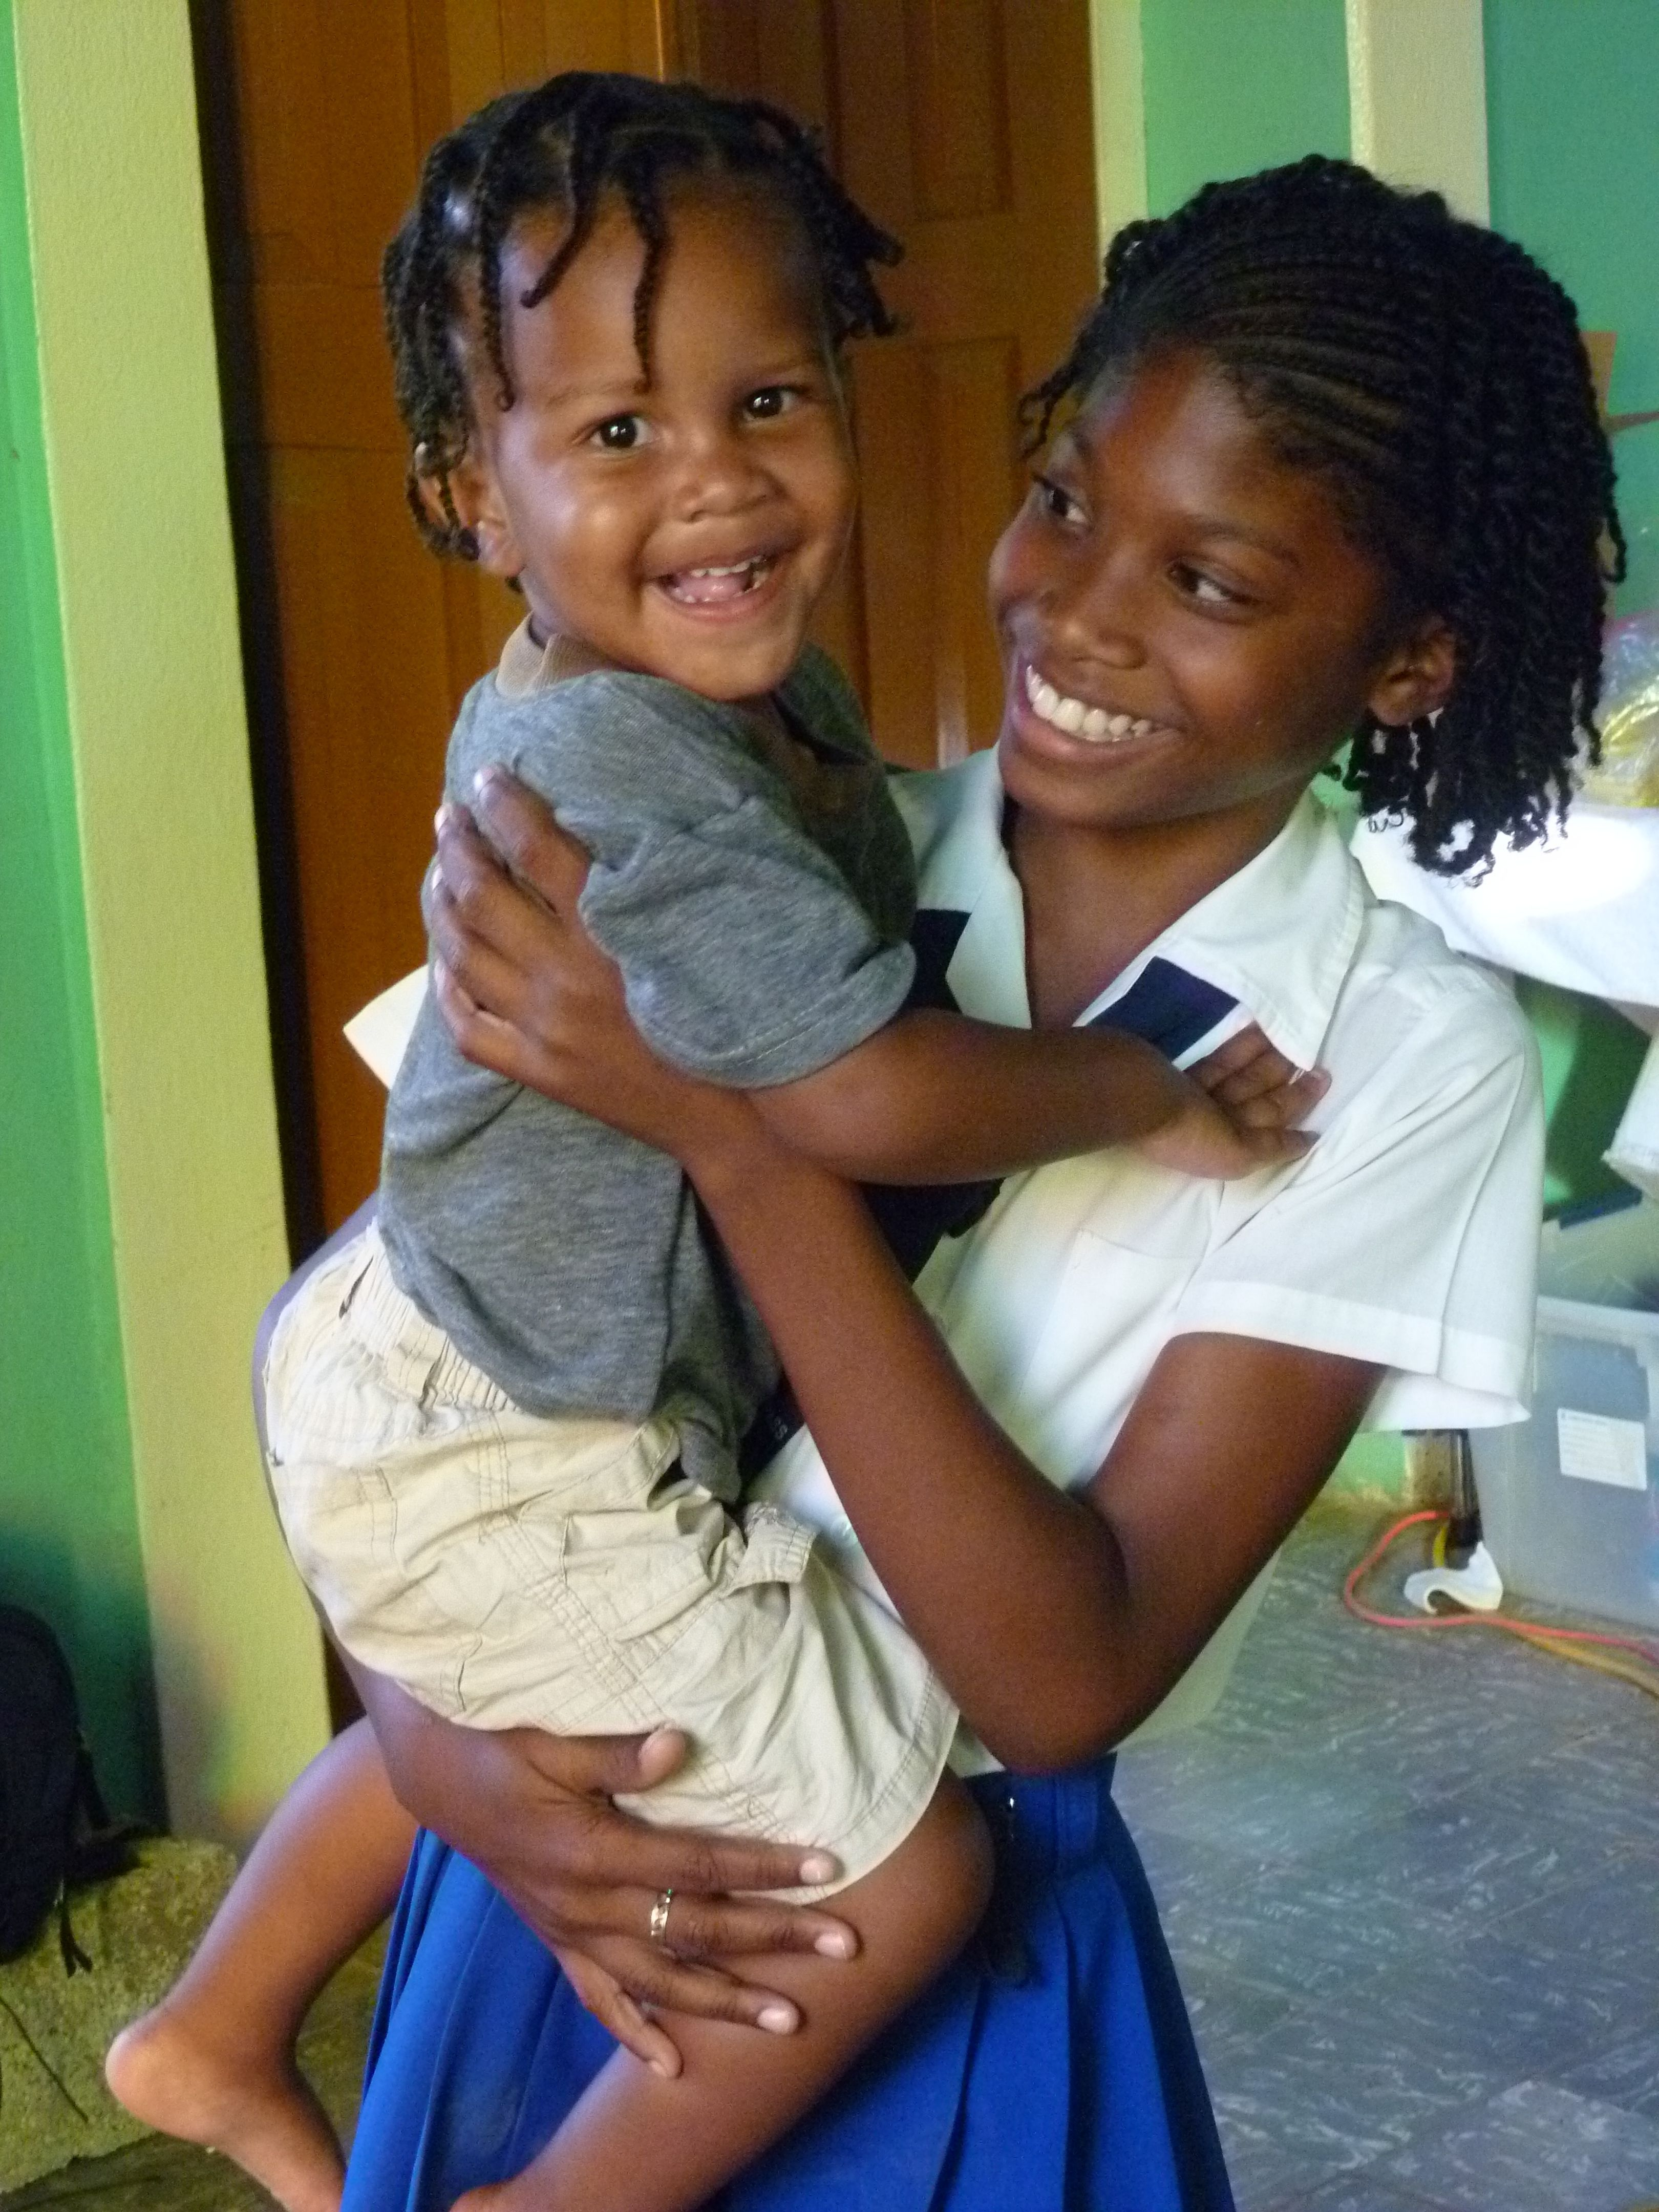 Our 2012 mission trip to provide dental services to the people of Jamaica